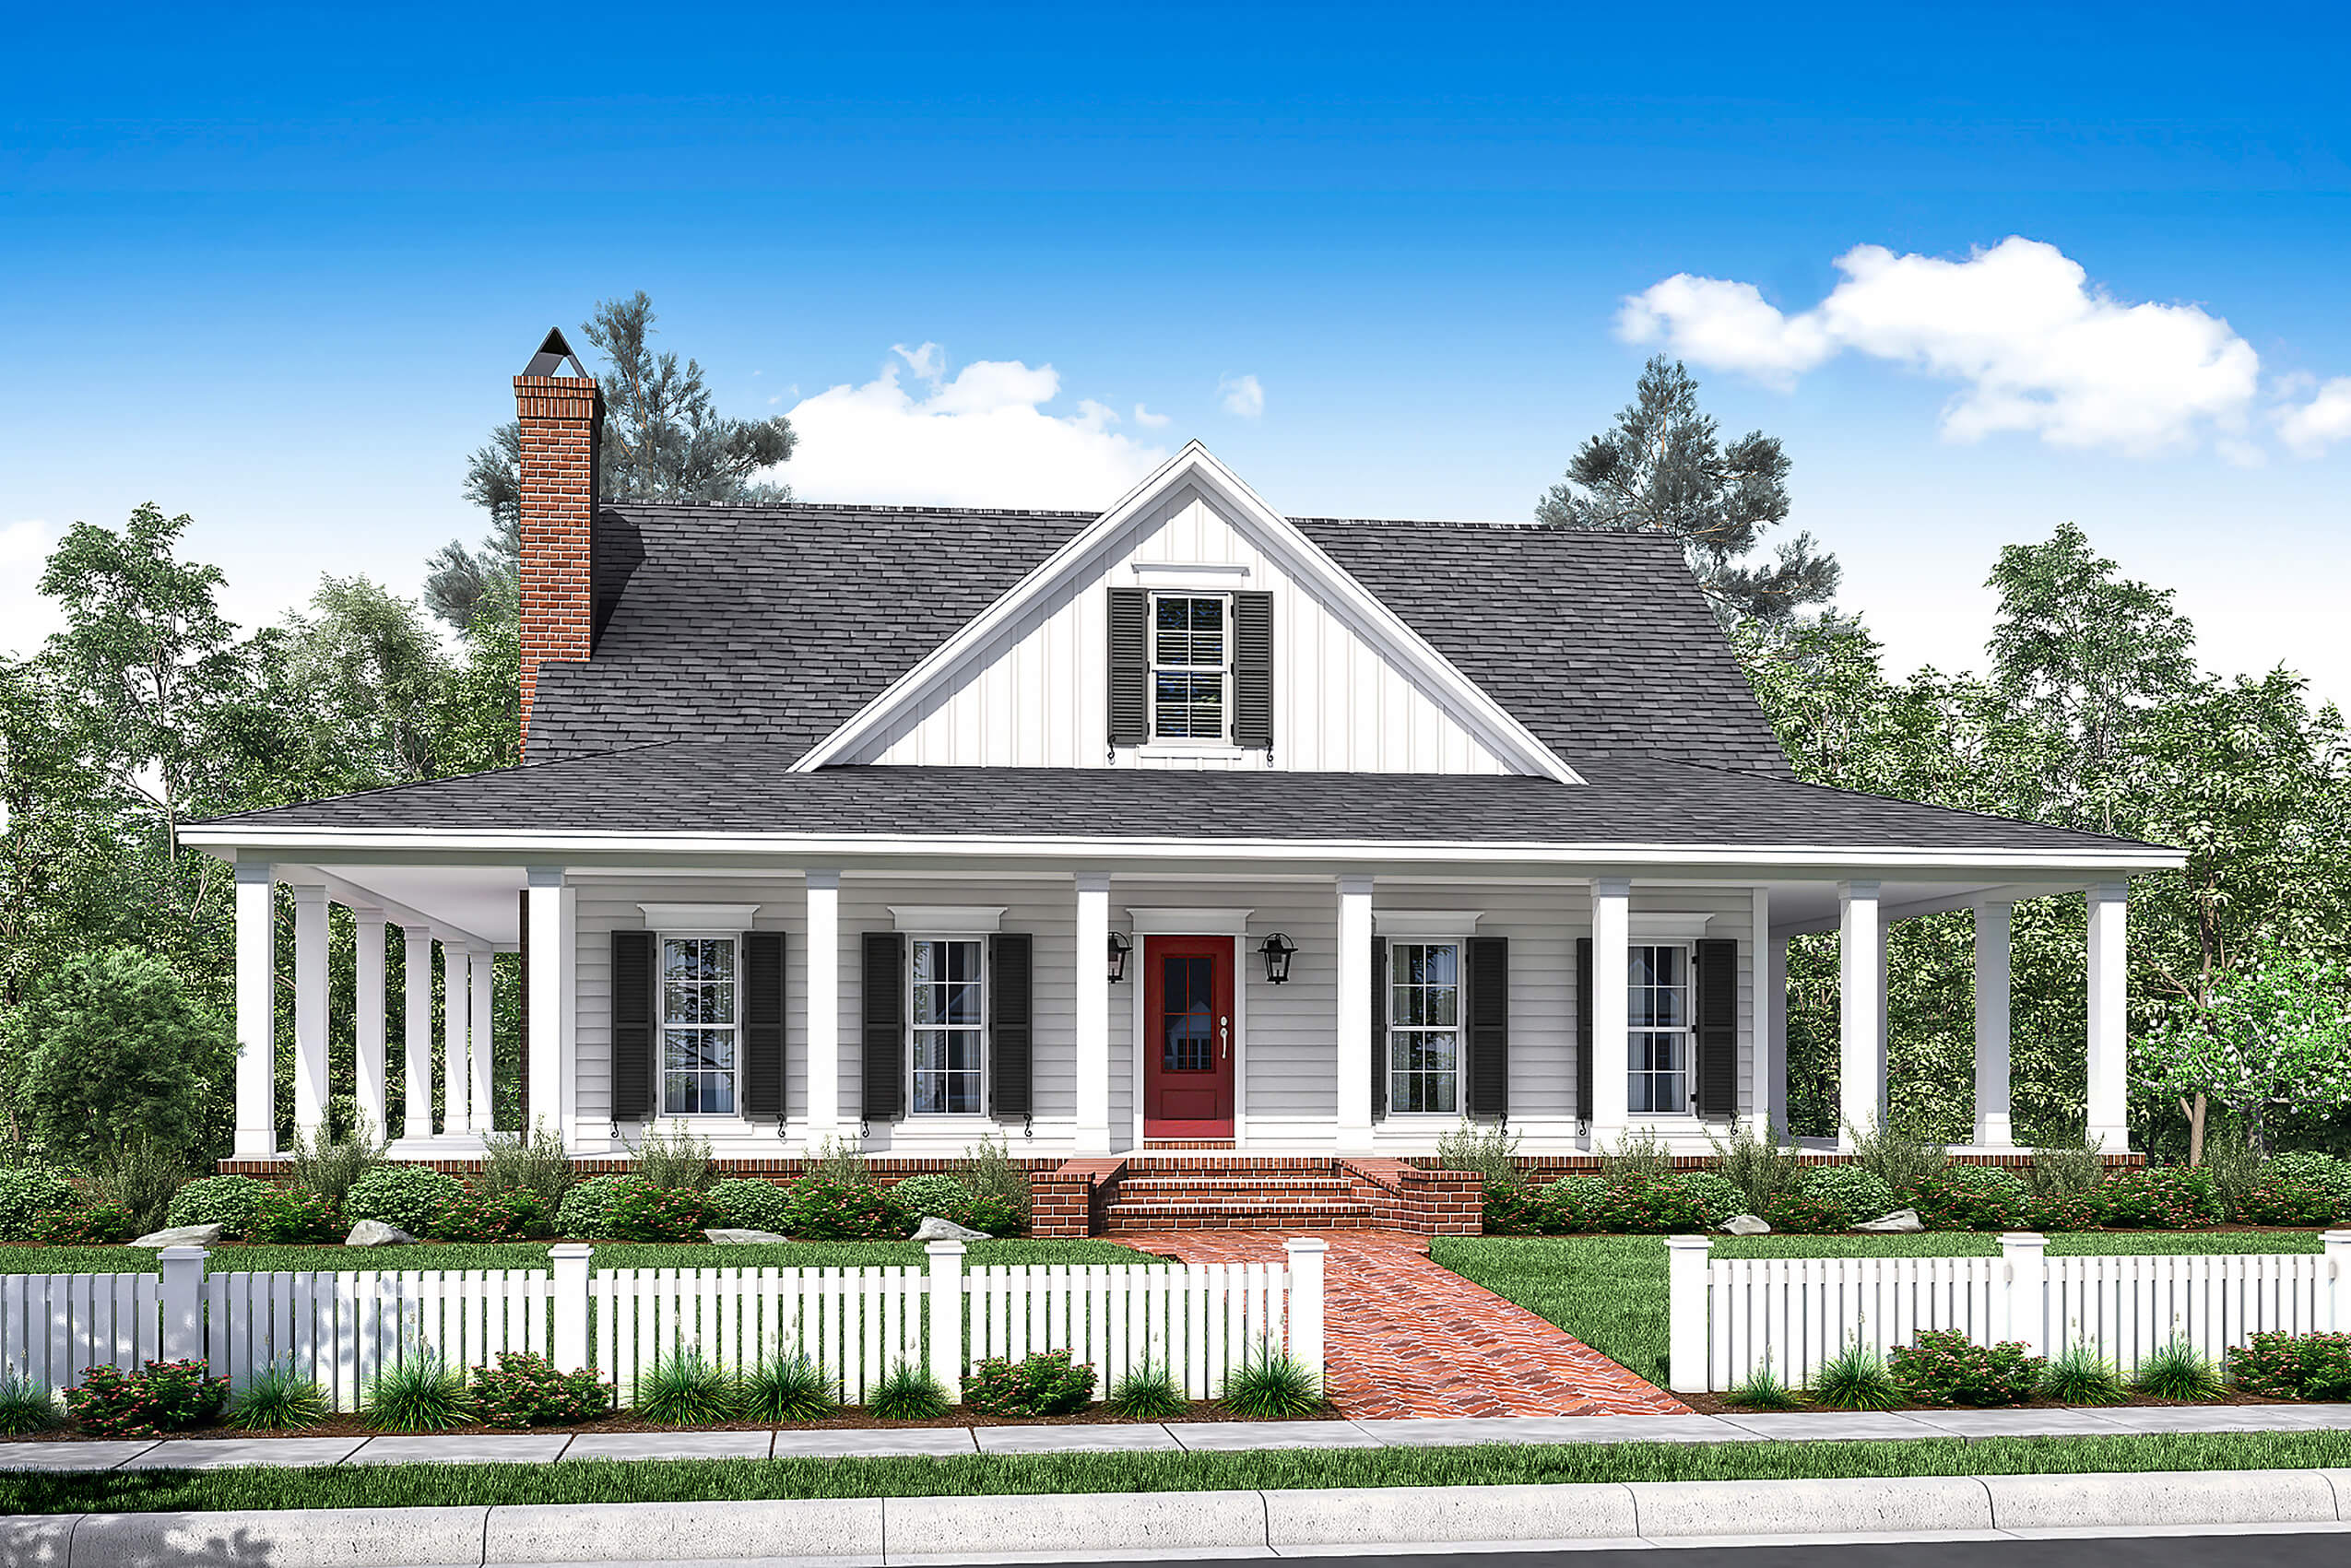 country style house plans with porches 3 bedrm 2084 sq ft southern home with wrap around porch 142 1175 1373